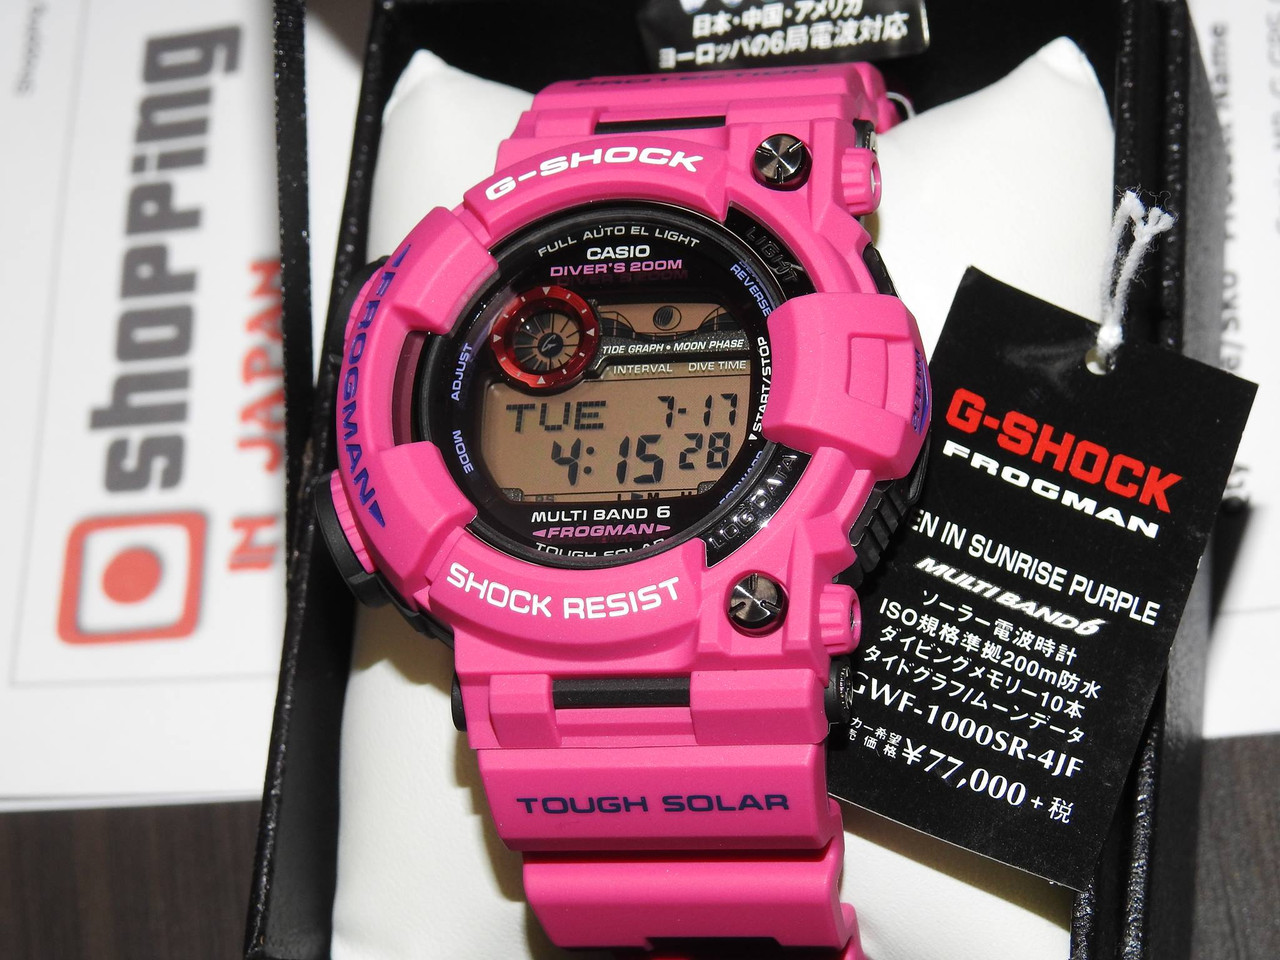 G-Shock Frogman Men In Sunrise Purple GWF-1000SR-4JF